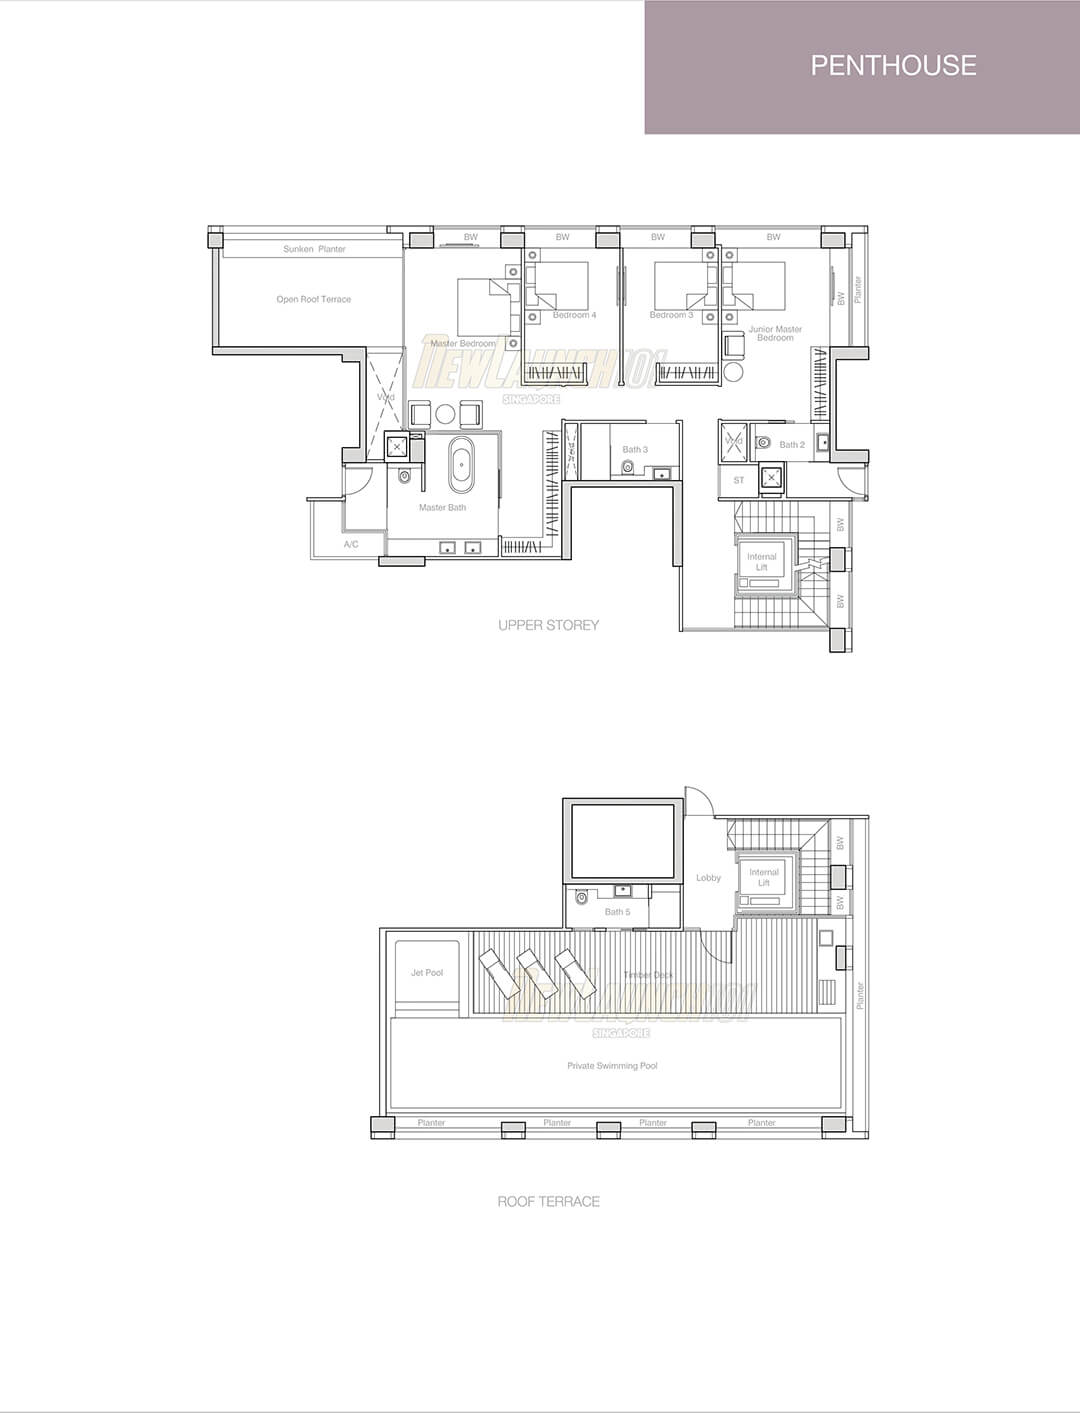 Nouvel 18 Floor Plan Penthouse Type PH2 Upper